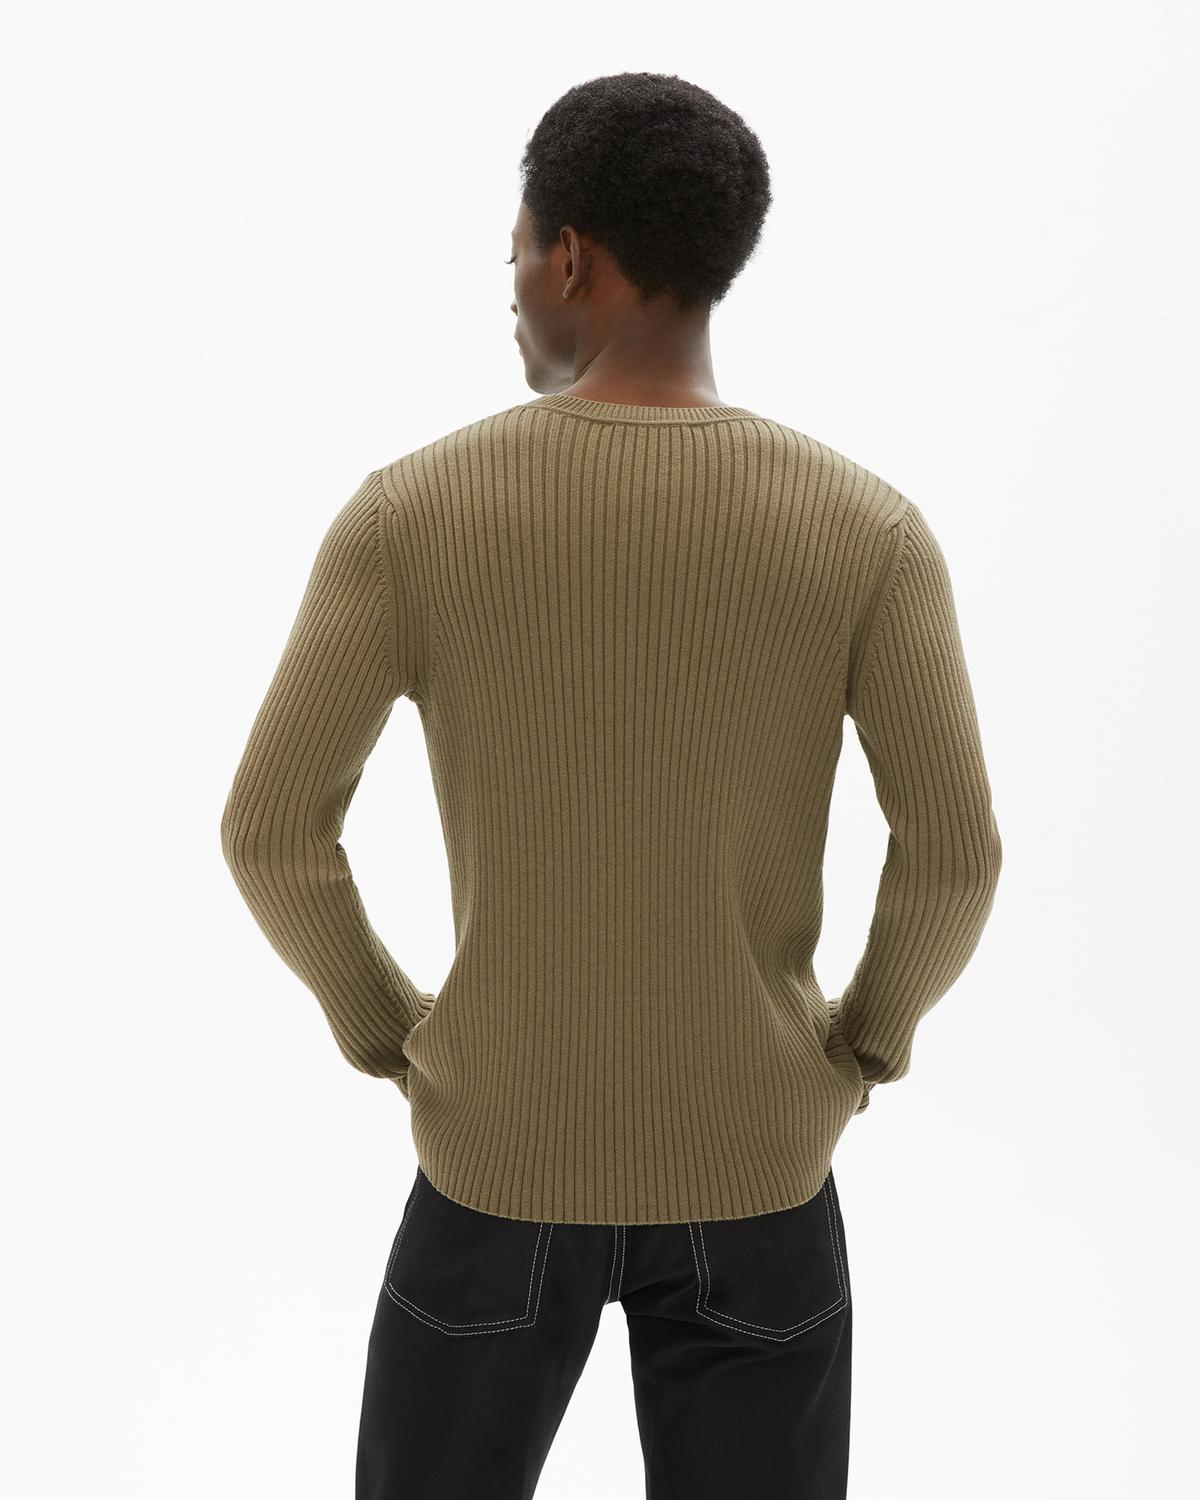 Mixed Rib Crewneck Sweater